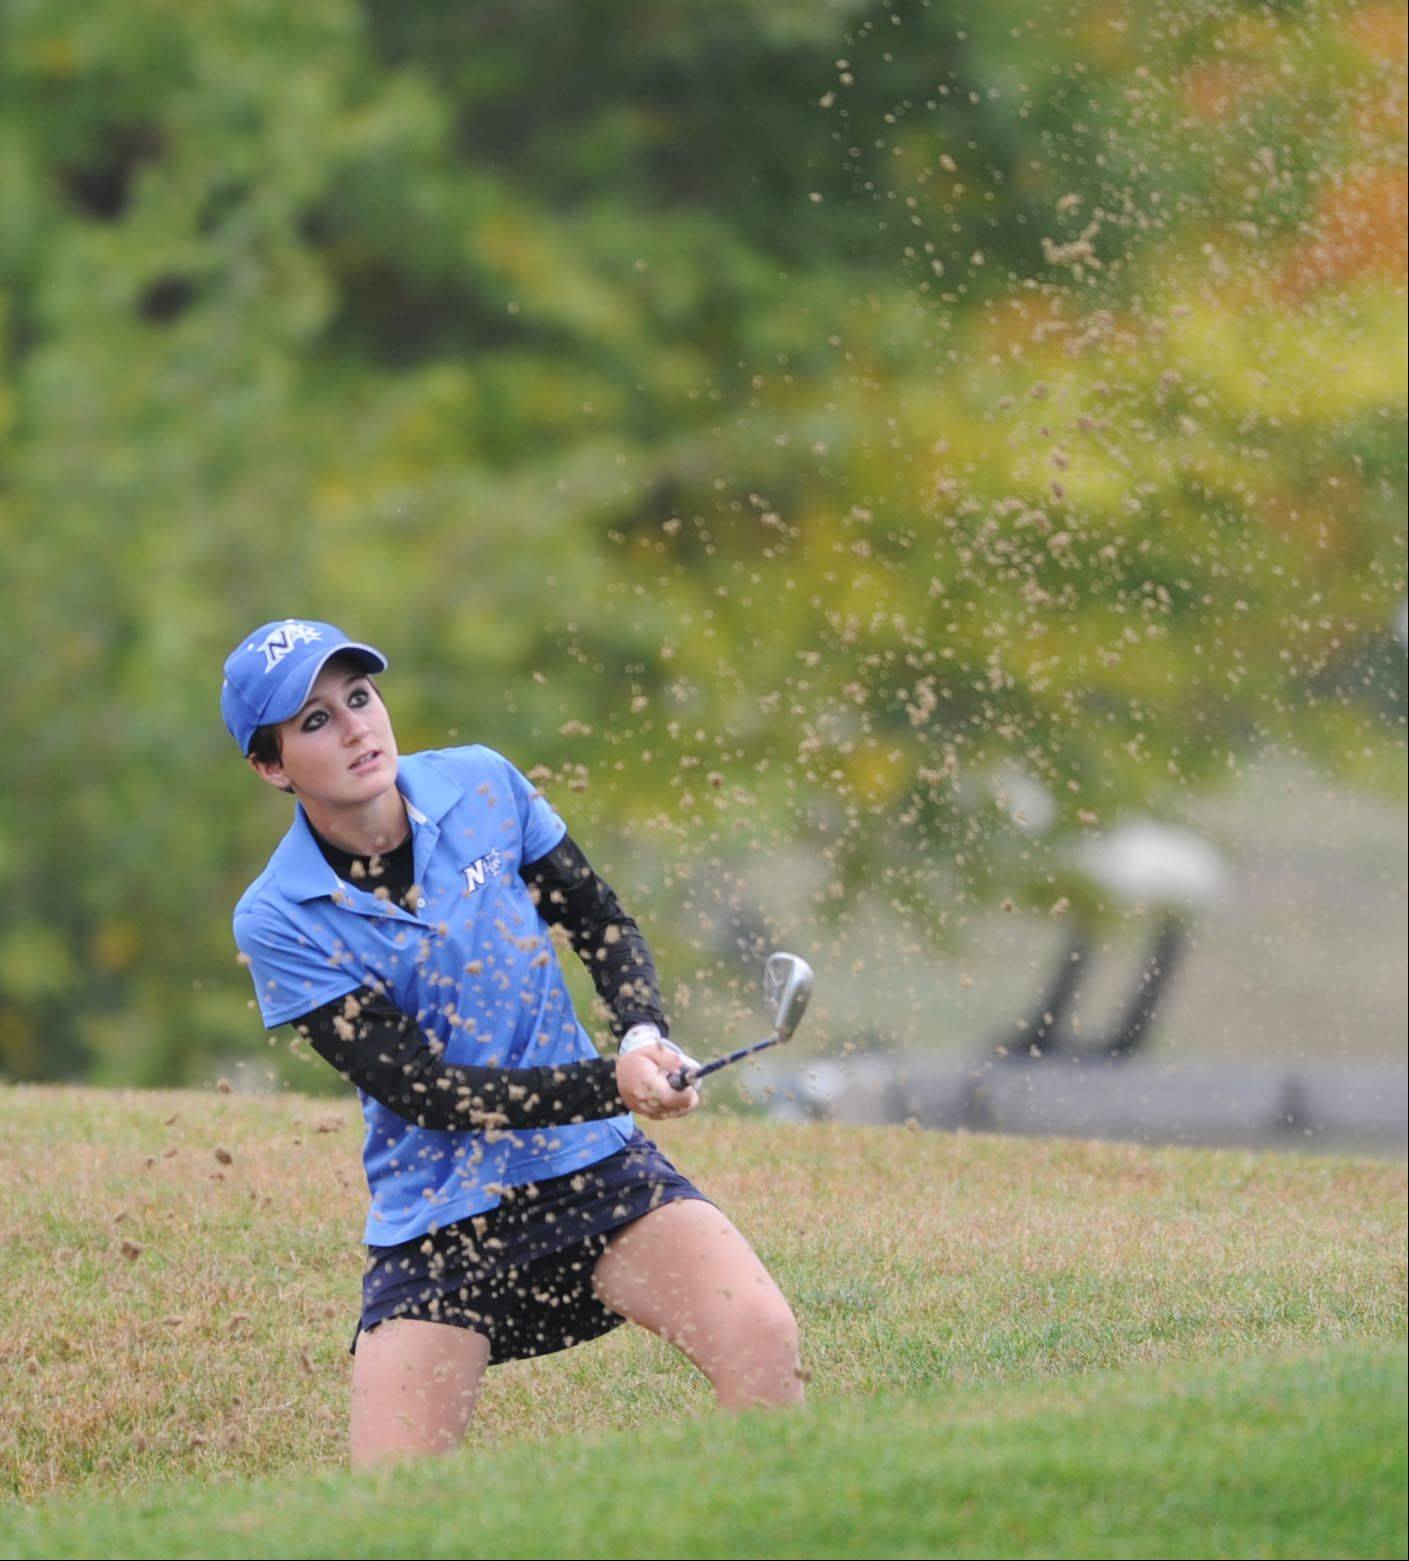 St. Charles North's Ariana Furrie blasts out of the bunker on the first hole at the Regional golf tournament Wednesday at the Golf Club of Illinois in Algonquin.